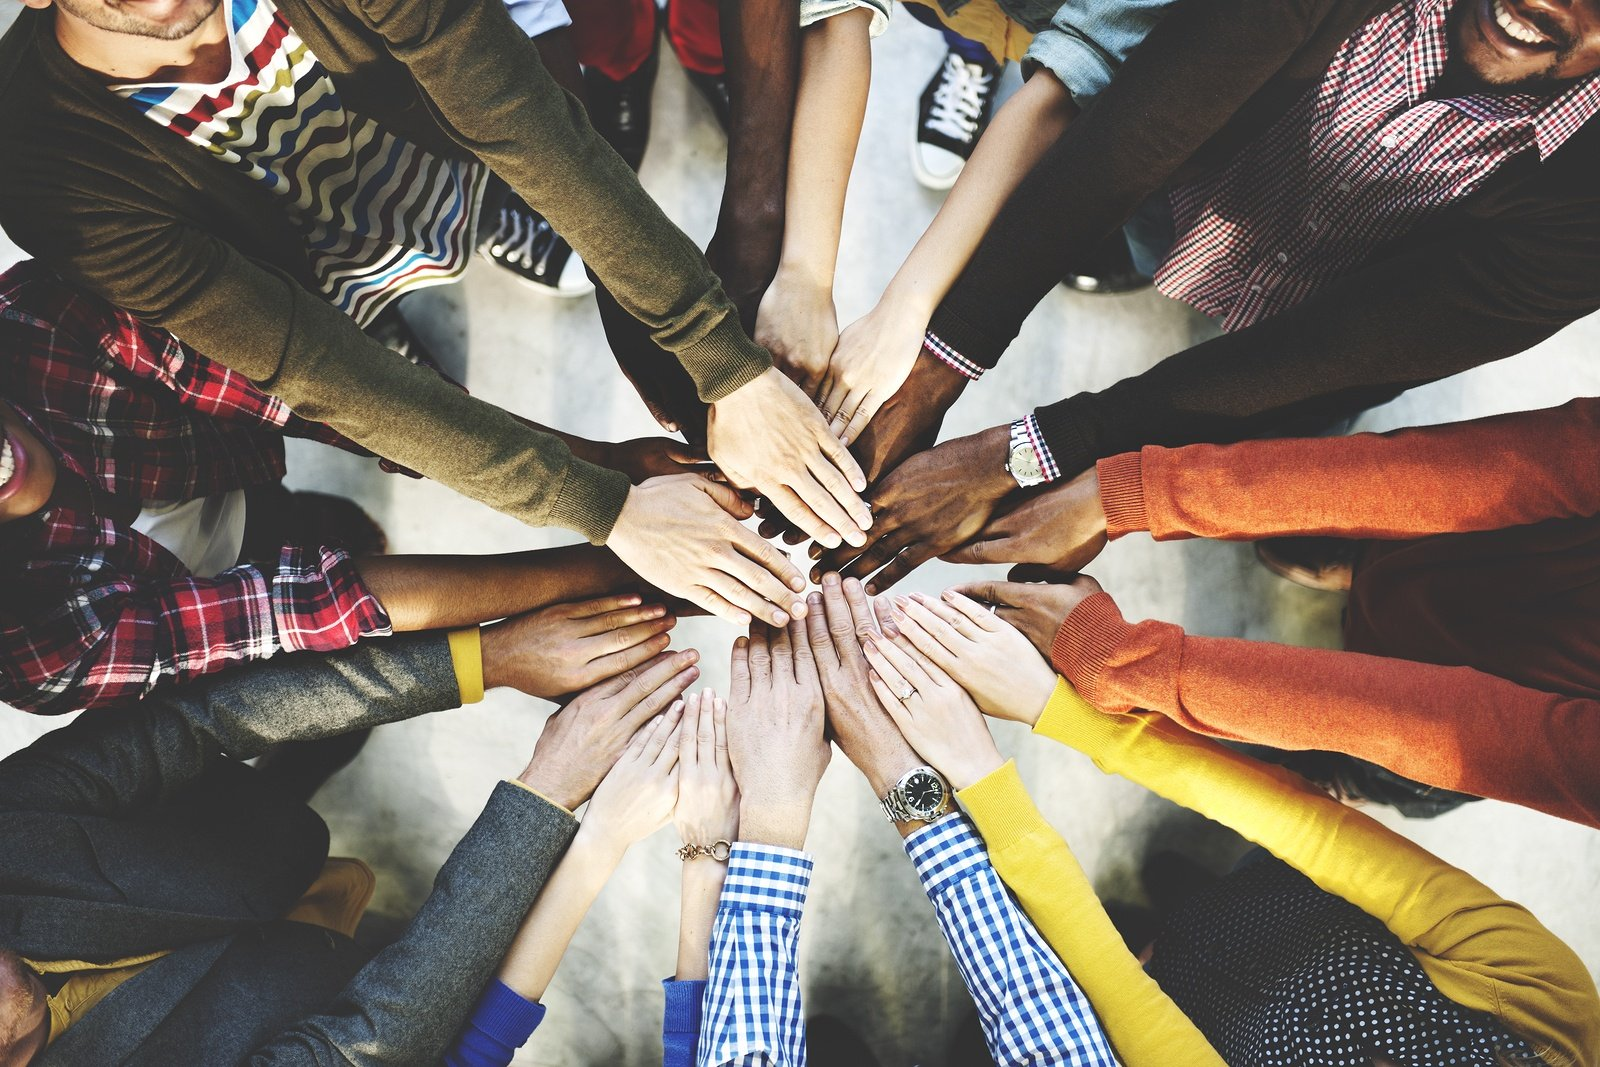 bigstock-Group-of-Diverse-Hands-Togethe-109645244